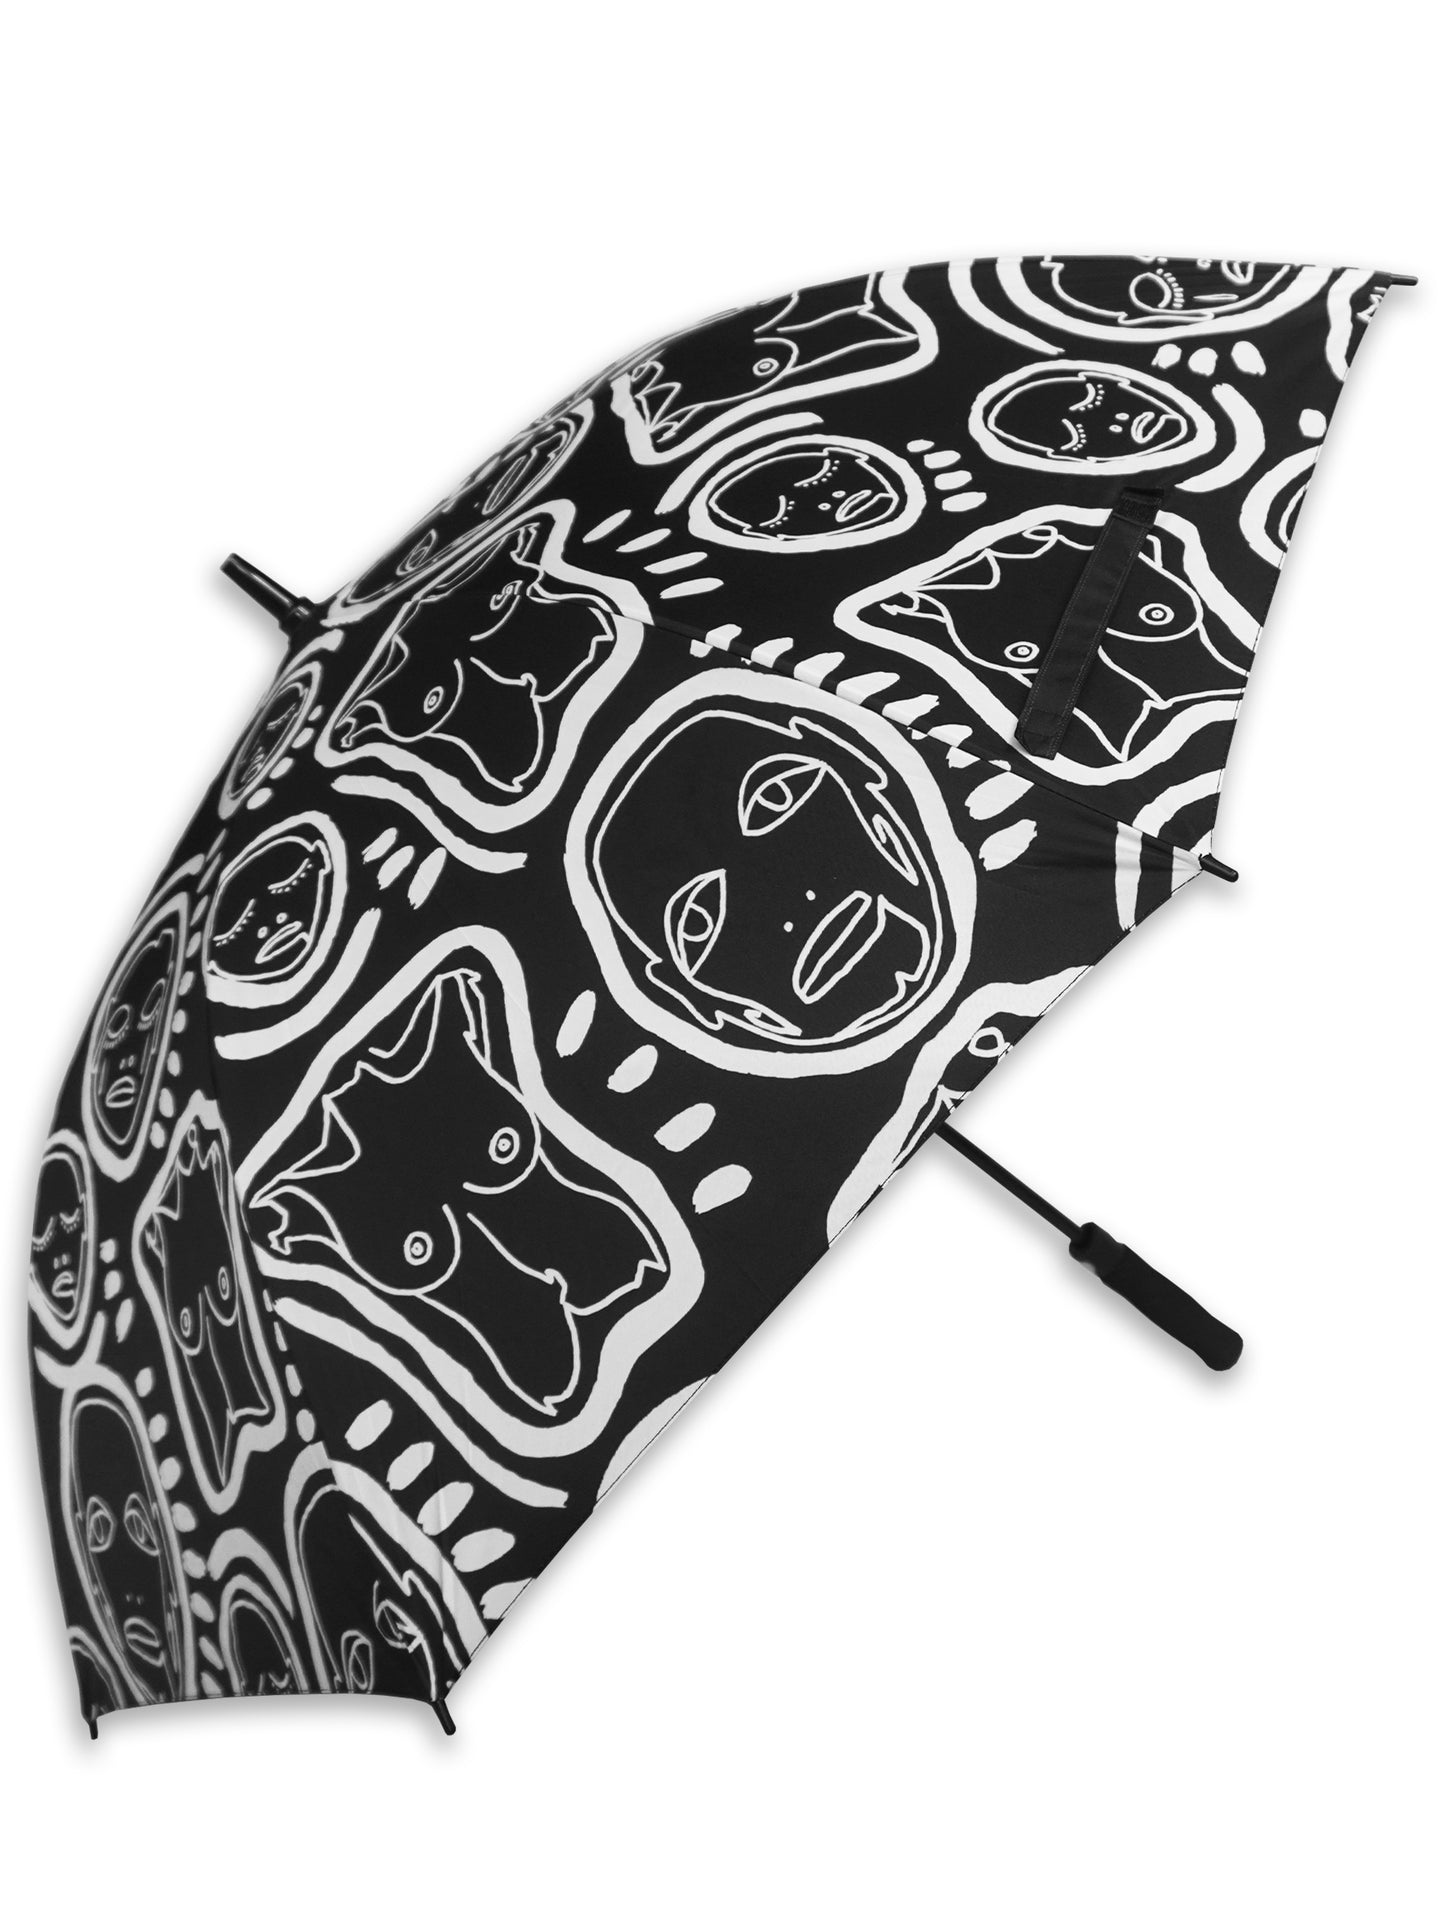 'ALL OVER YOU' OVERSIZED UMBRELLA - Patrick Church